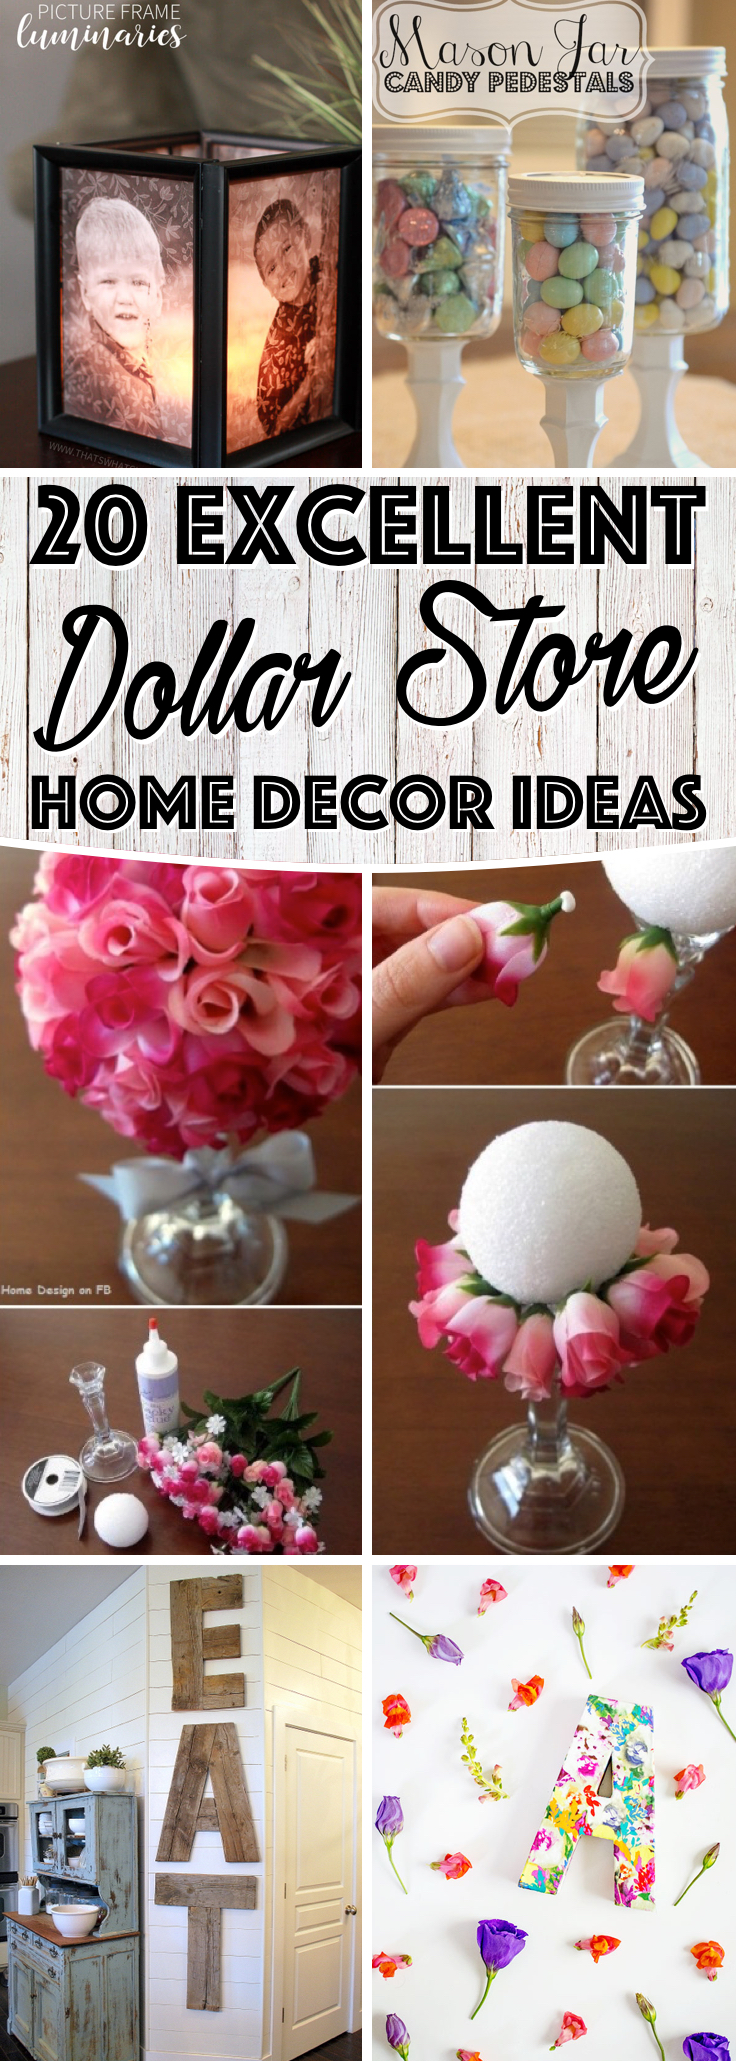 20 Excellent Dollar Store Home Decor Ideas